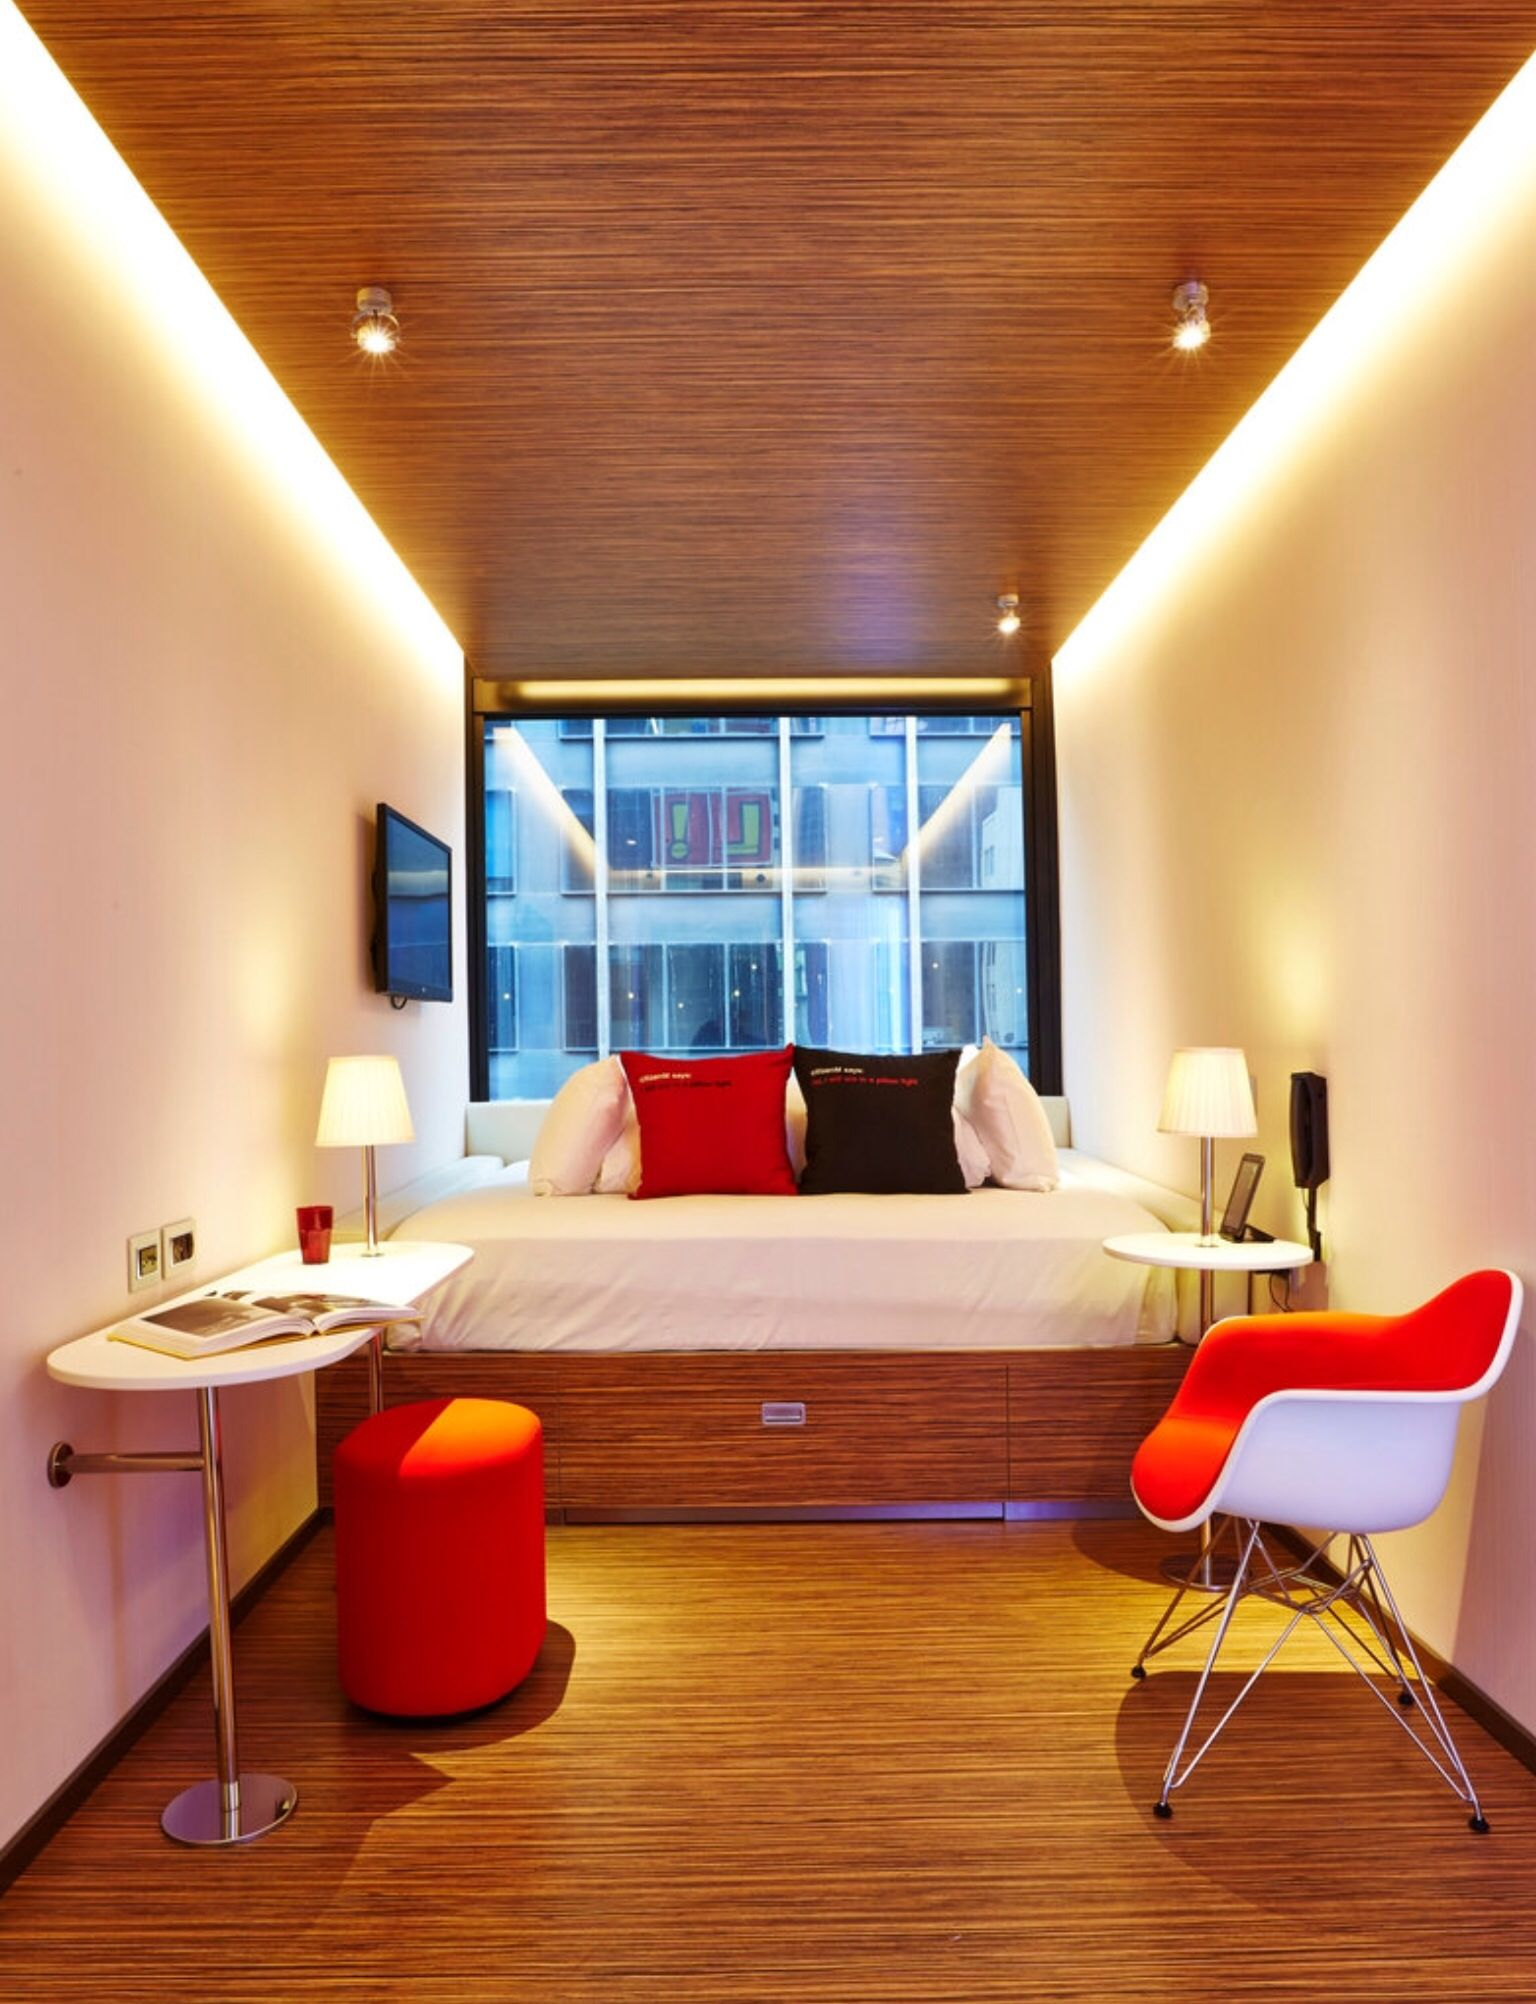 Small Hotel Room Design: Citizen M Hotel Room Via NY Times. Compact. Sleepable